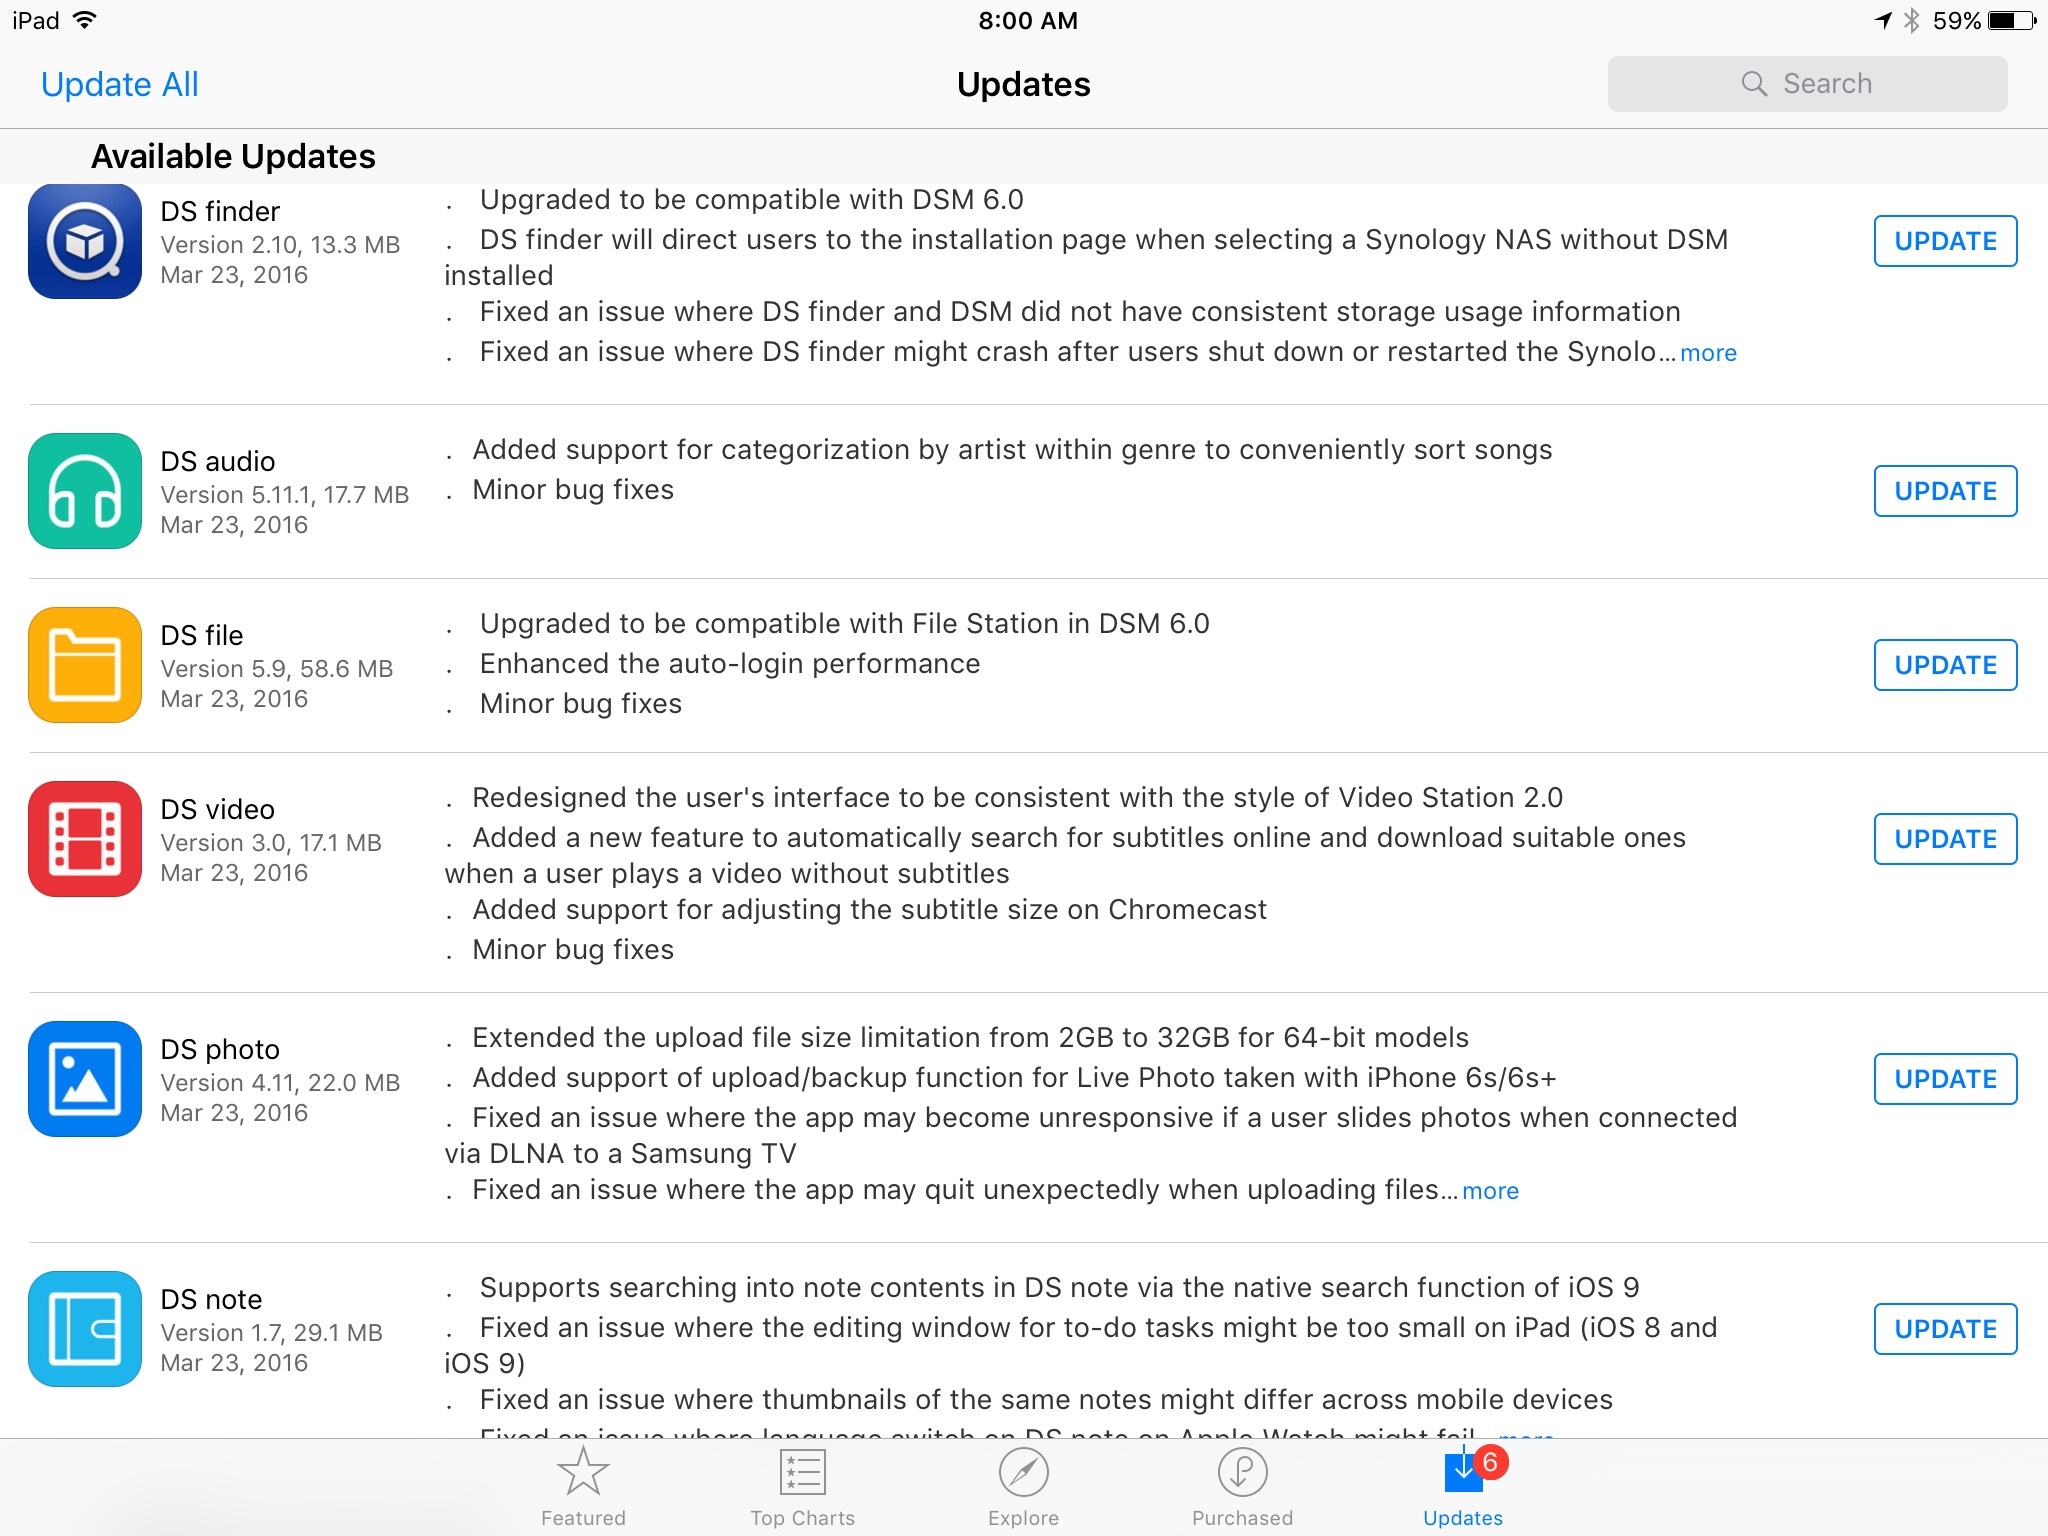 Synology Updated their Suite of iOS Apps to Match DSM6